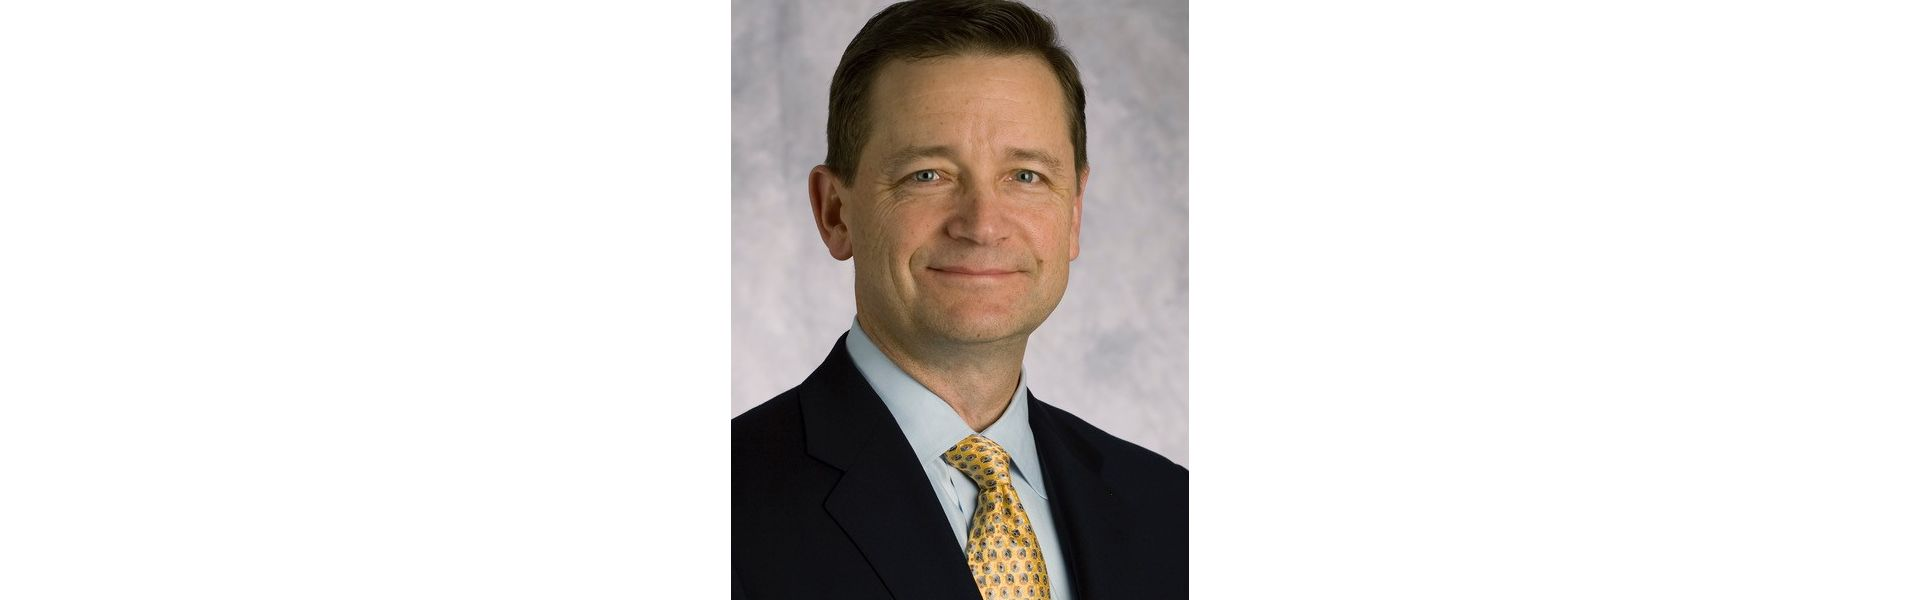 Conduent Names Cliff Skelton President and Chief Operating Officer